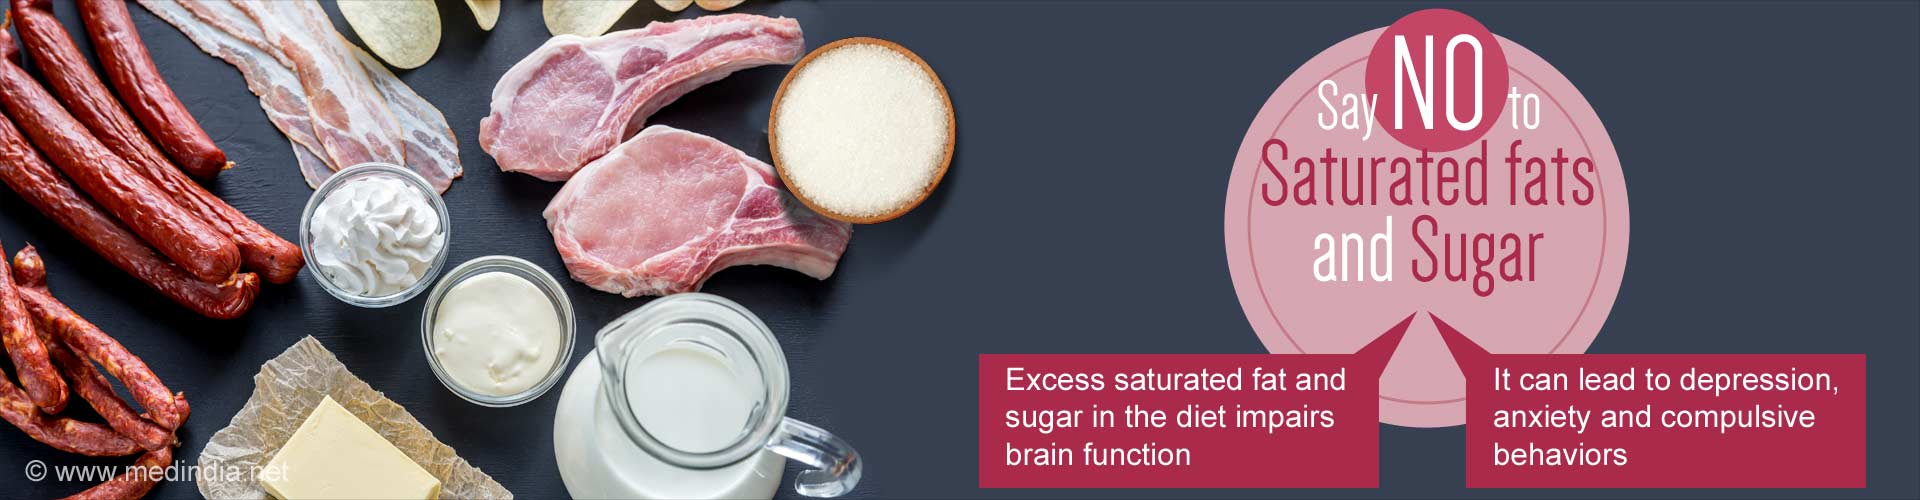 Too Much Saturated Fat and Sugar Not Good For the Brain